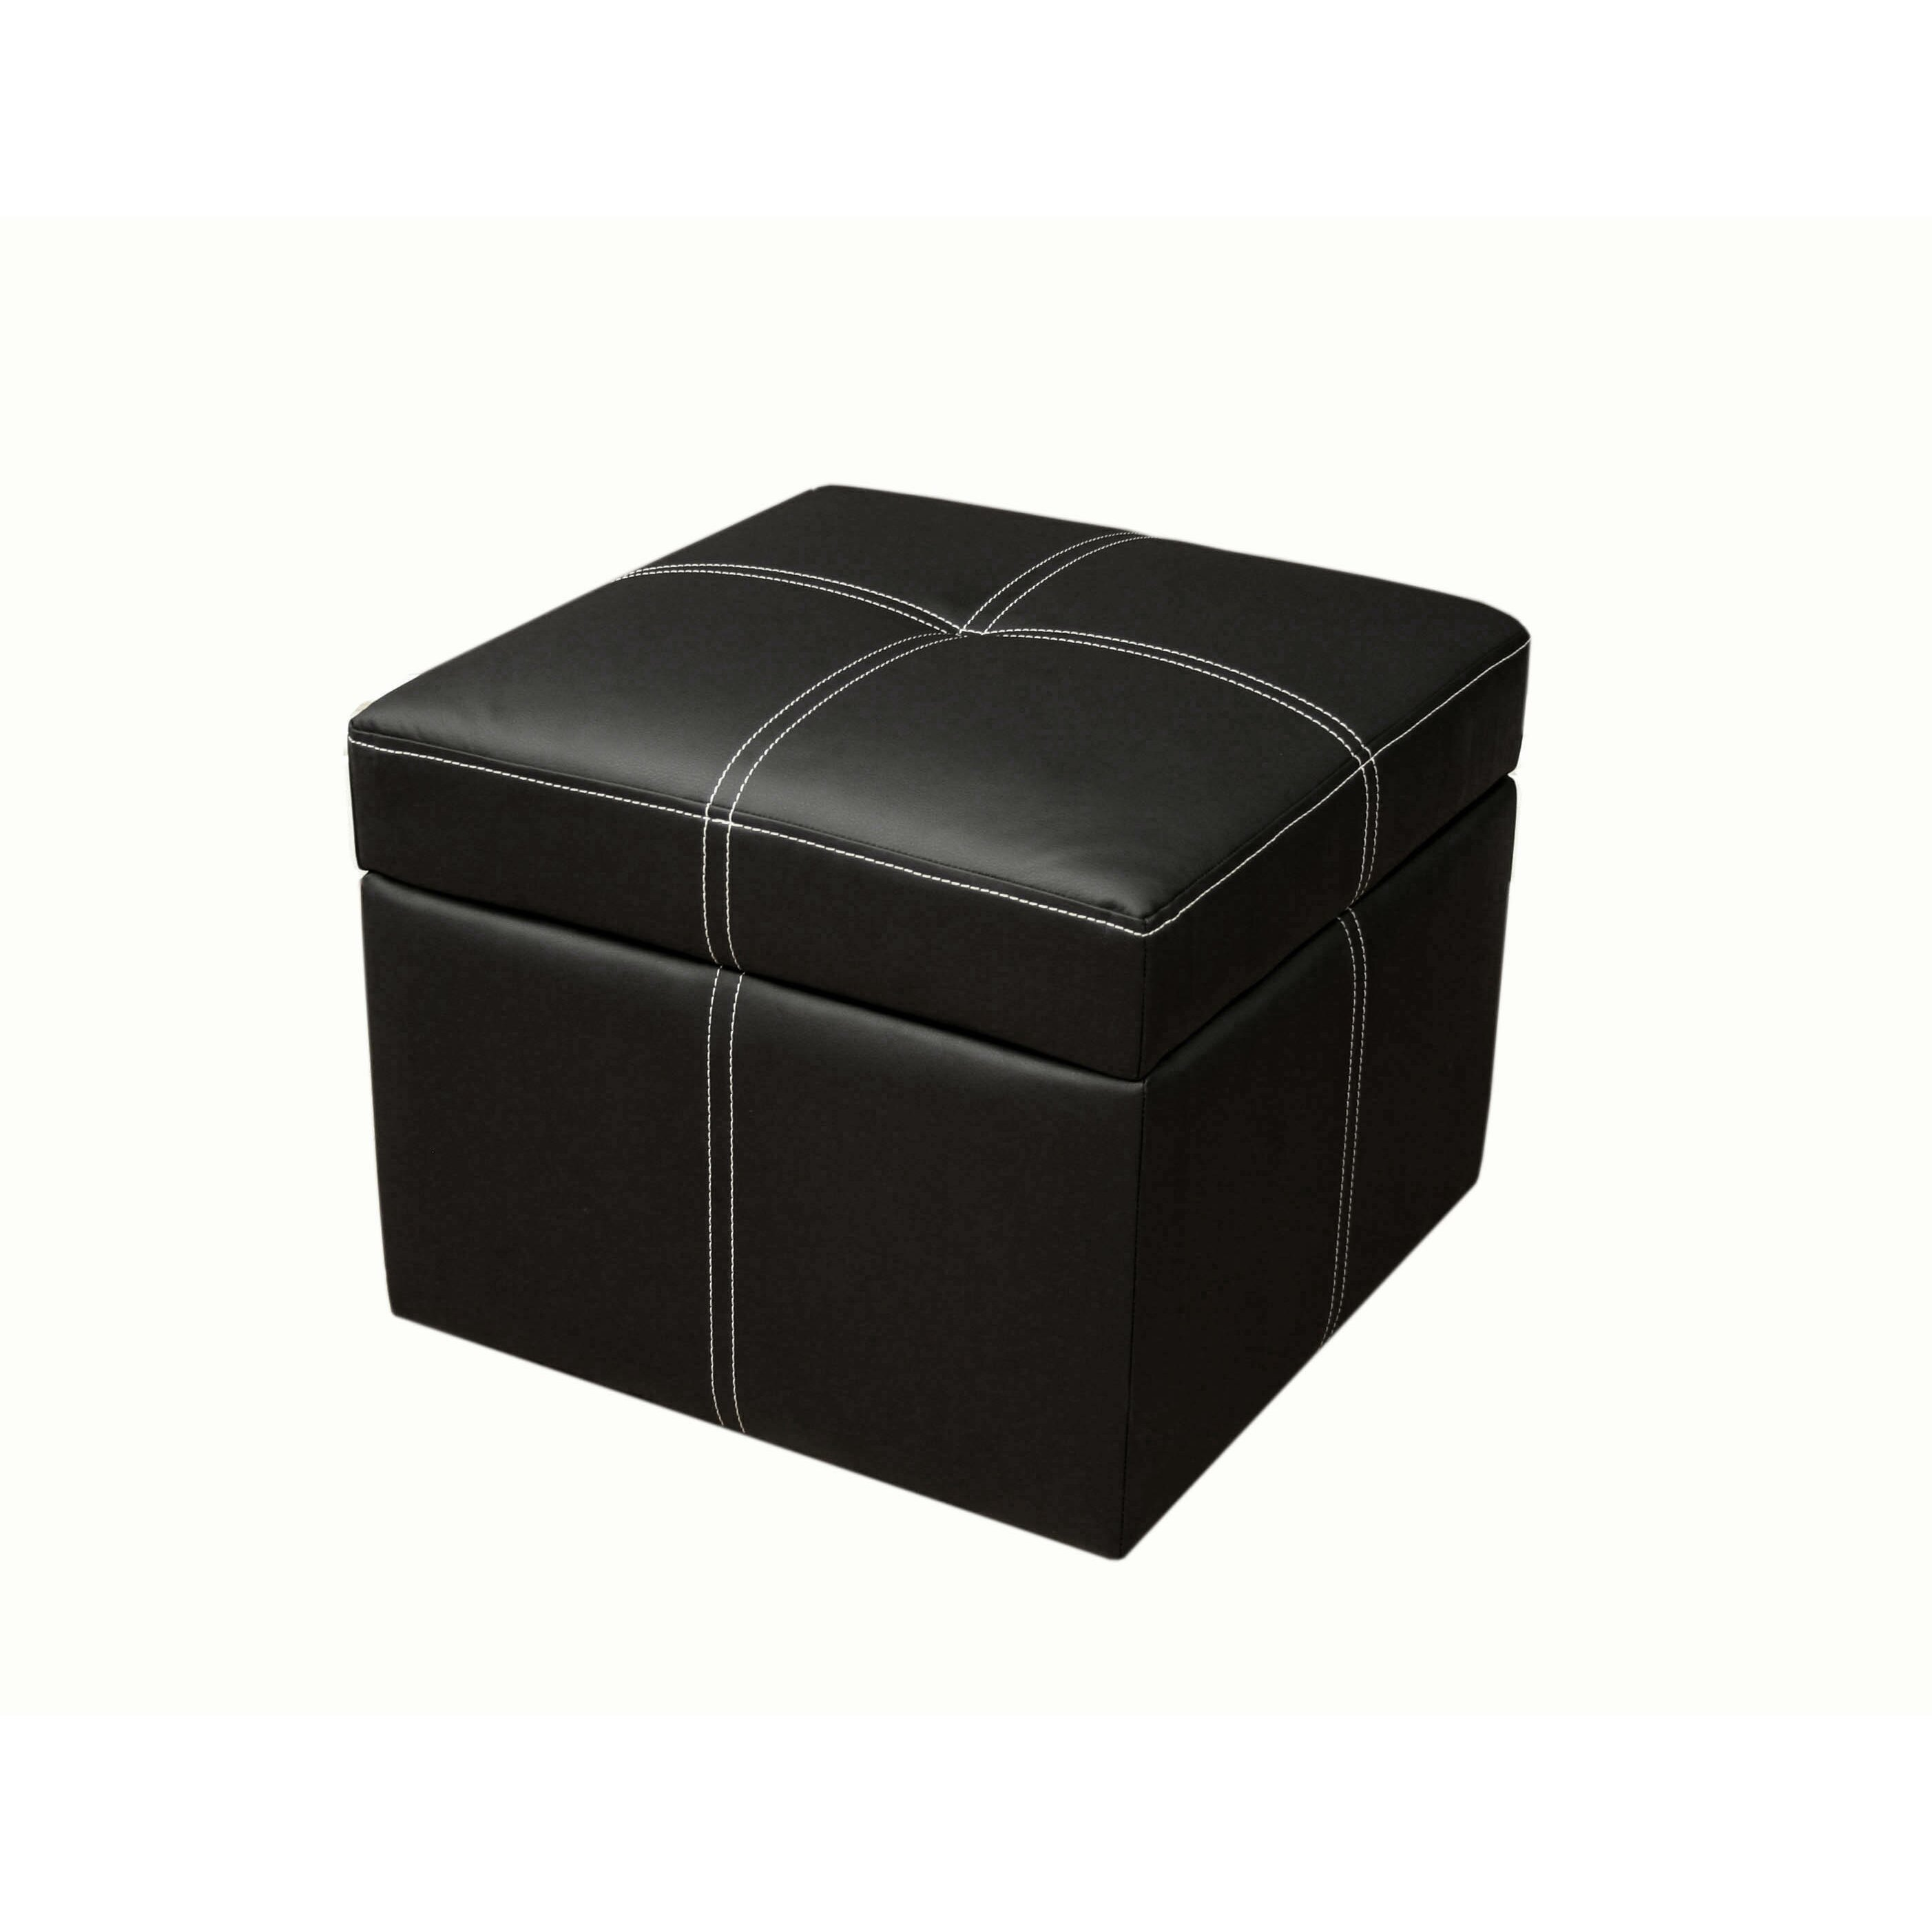 DHP Delaney Small Square Ottoman in Black amp; Reviews  Wayfair